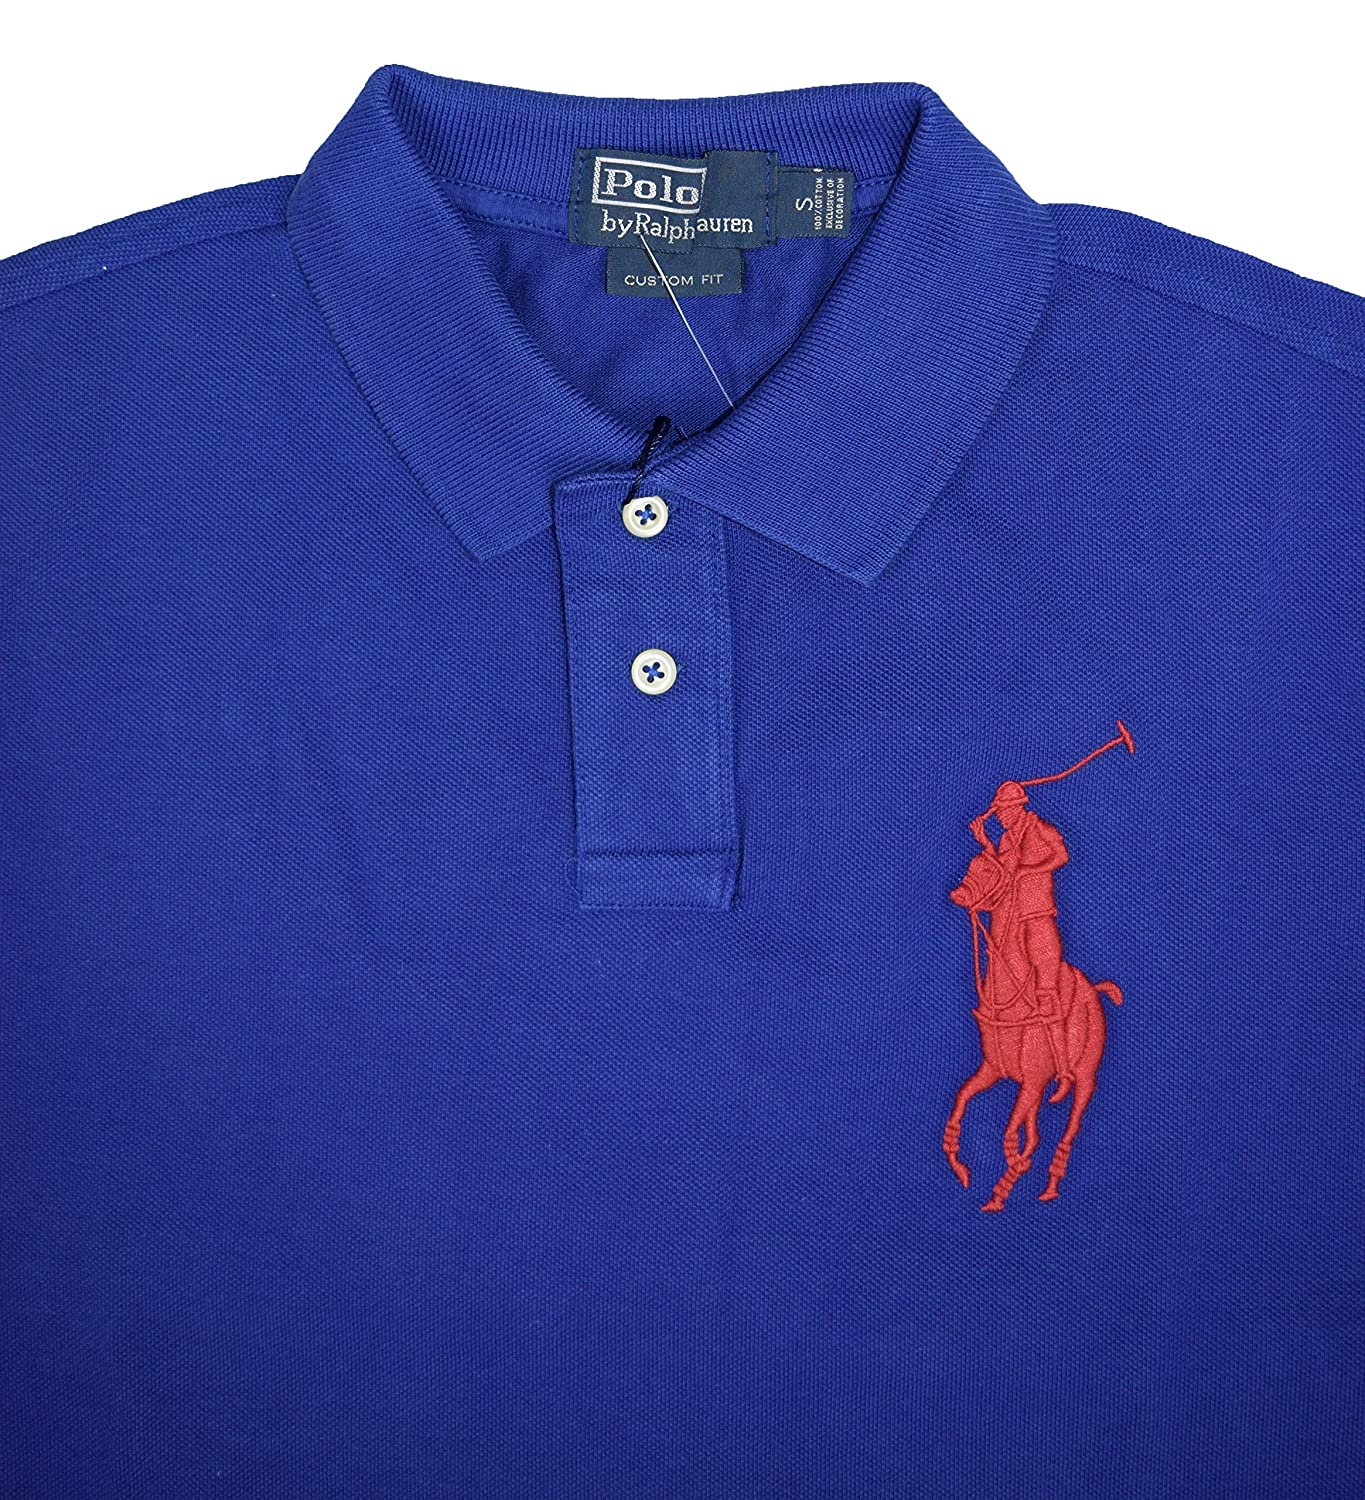 cd2055dad Ralph Lauren Men's Custom Fit Long Sleeve Polo Shirt - Big Pony (Small,  Royal Blue (Red Pony)): Amazon.co.uk: Clothing